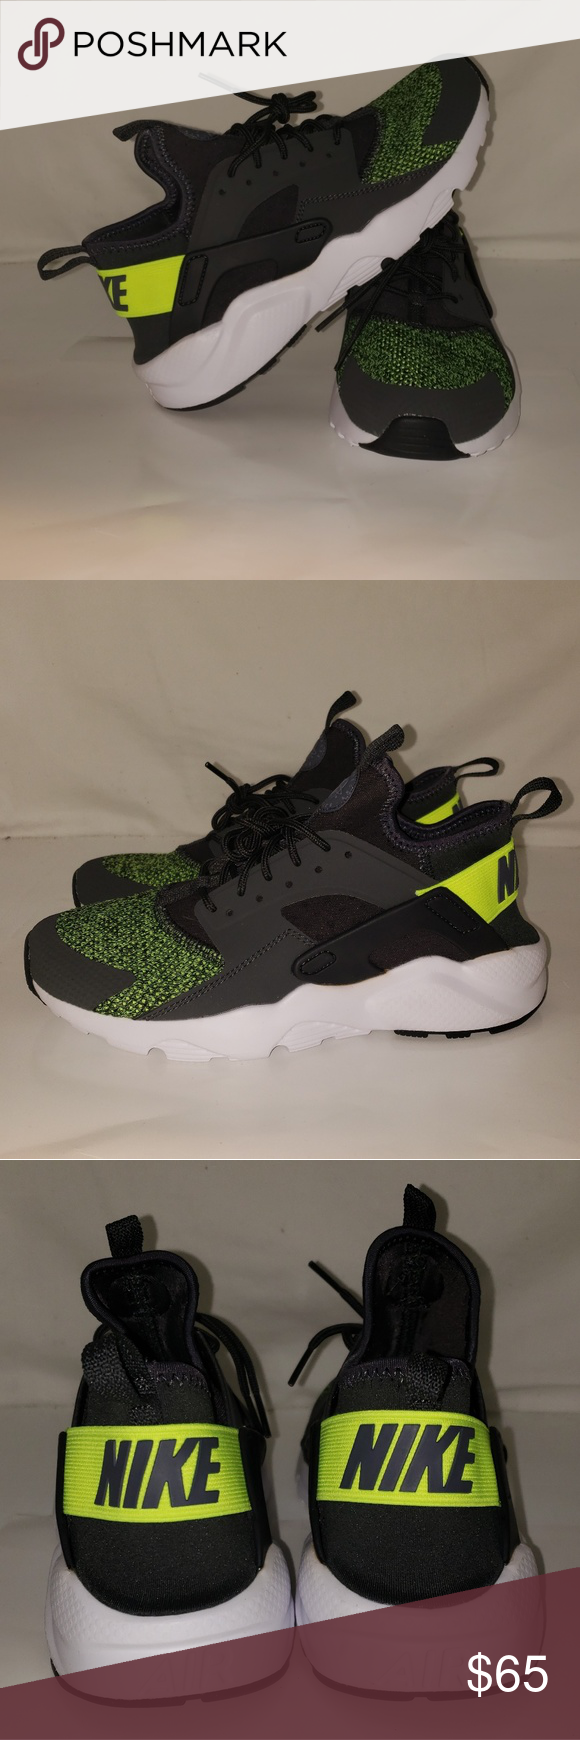 23aa642e1c Nike Huaraches size 7 youth New item Size 7 Nike Huaraches Brand: Nike  Color: Anthracite / bolt cool Grey (neon yellowgreen/ grey/white )  Material: ...